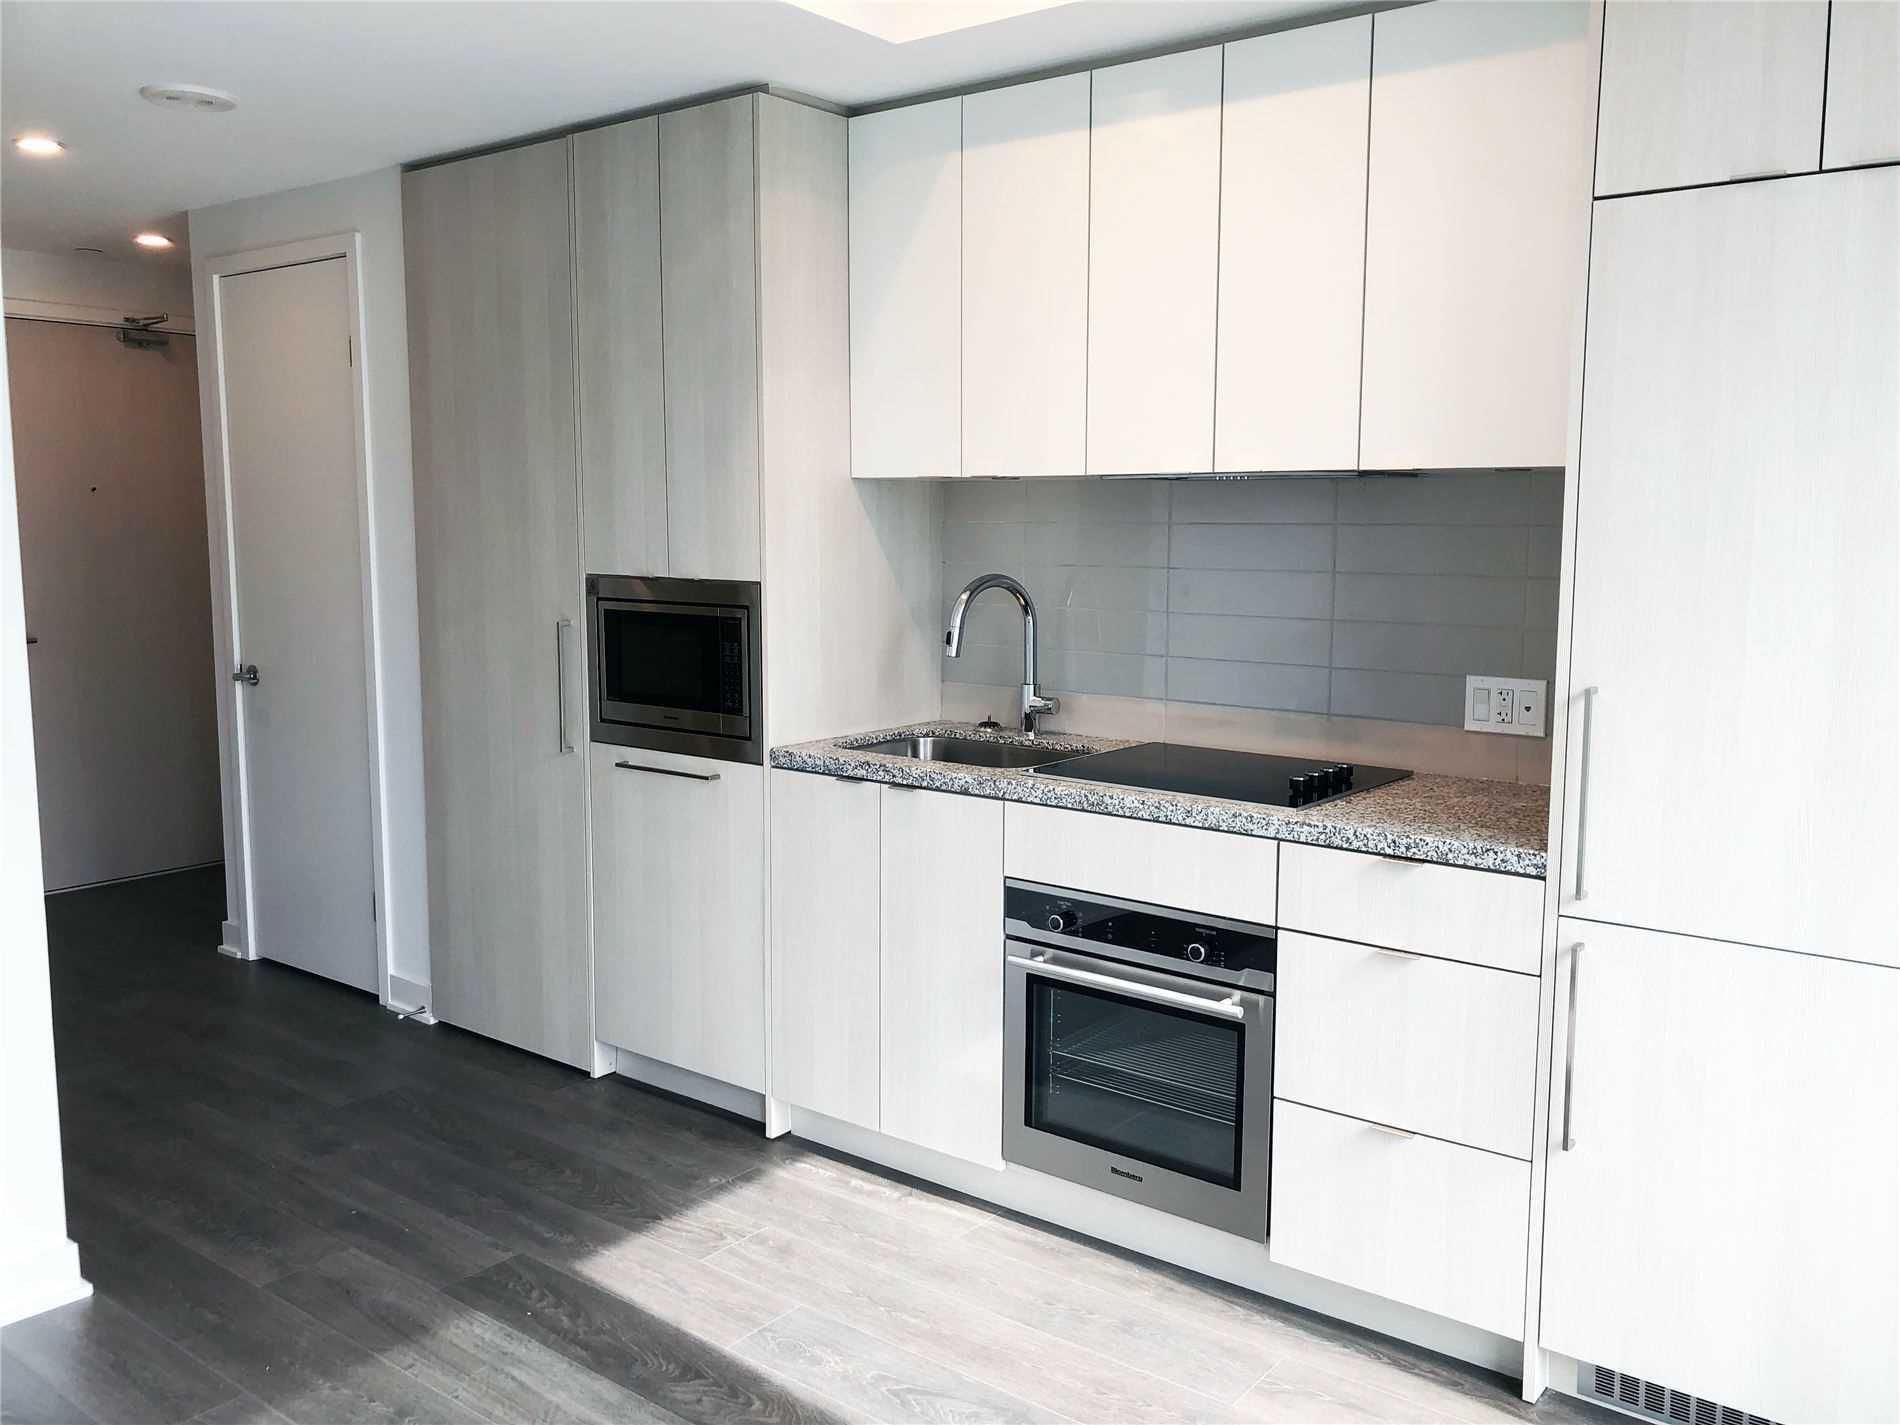 115 Blue Jays Way, unit 3707 for rent in Toronto - image #1